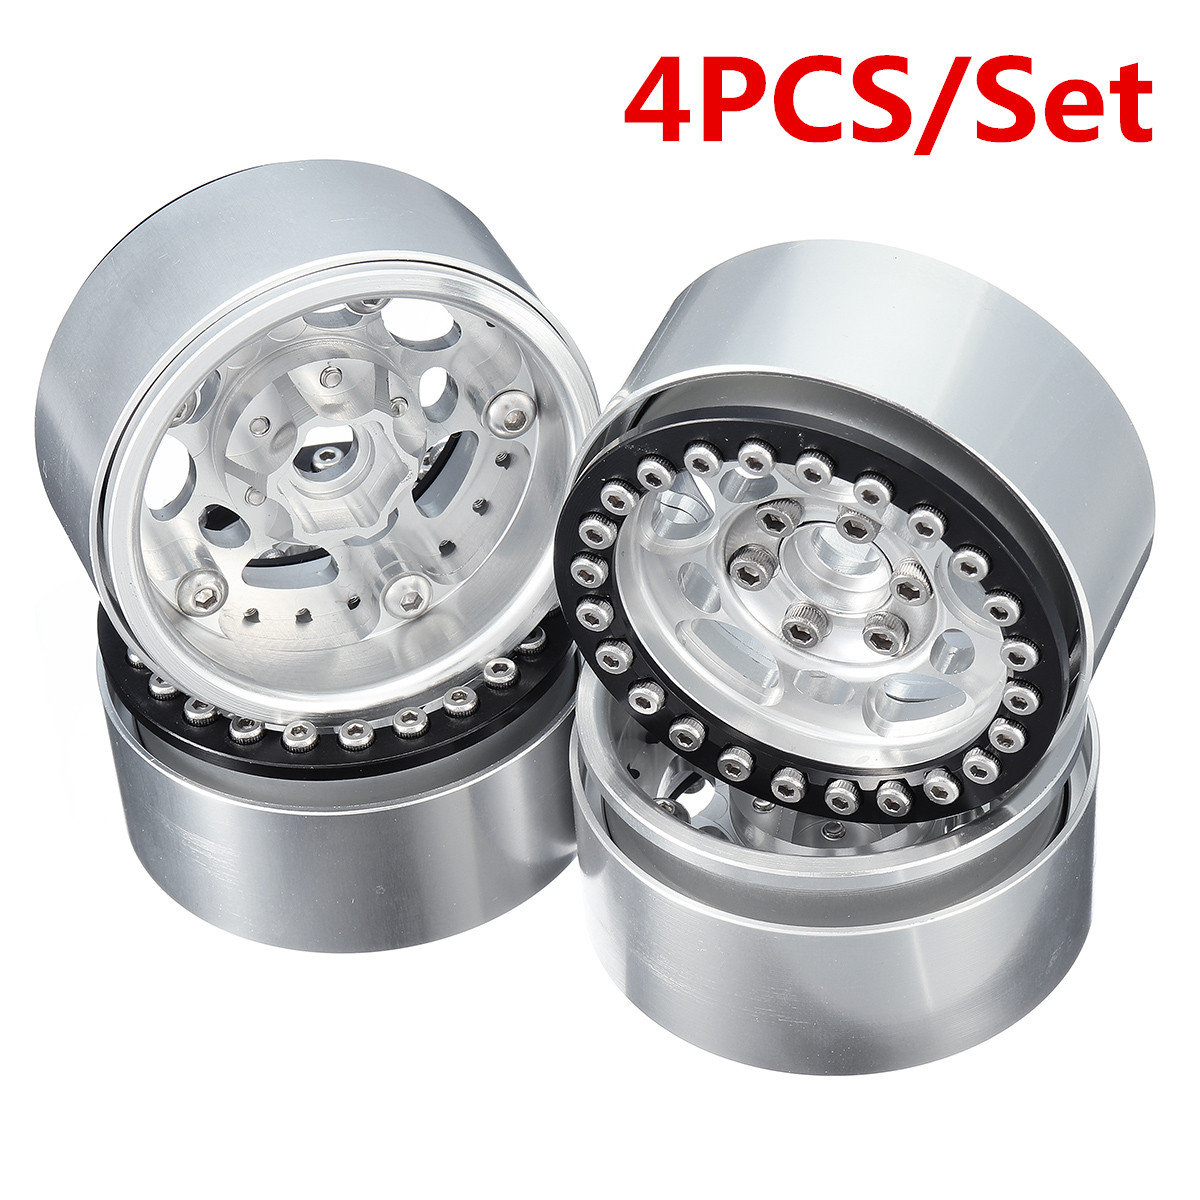 4PC 1.9inch Aluminum Beadlock Wheel Rims for 1/10 RC Crawler TRAXXAS TRX-4 #45 Car Parts Silver4PC 1.9inch Aluminum Beadlock Wheel Rims for 1/10 RC Crawler TRAXXAS TRX-4 #45 Car Parts Silver